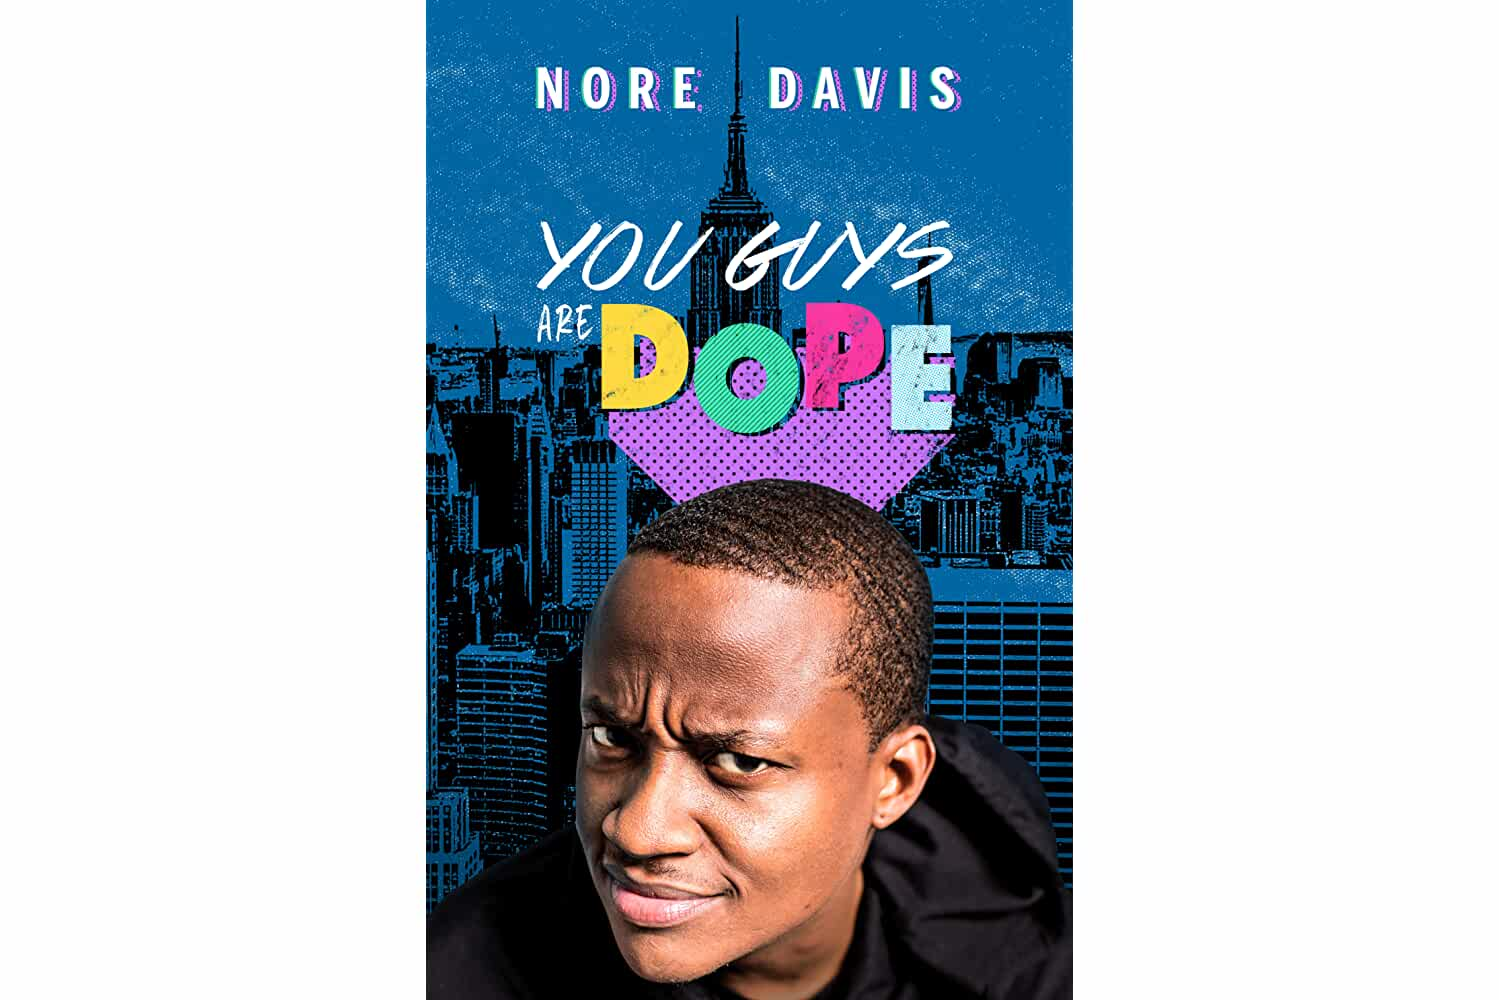 Nore Davis: You Guys Are Dope (2018)